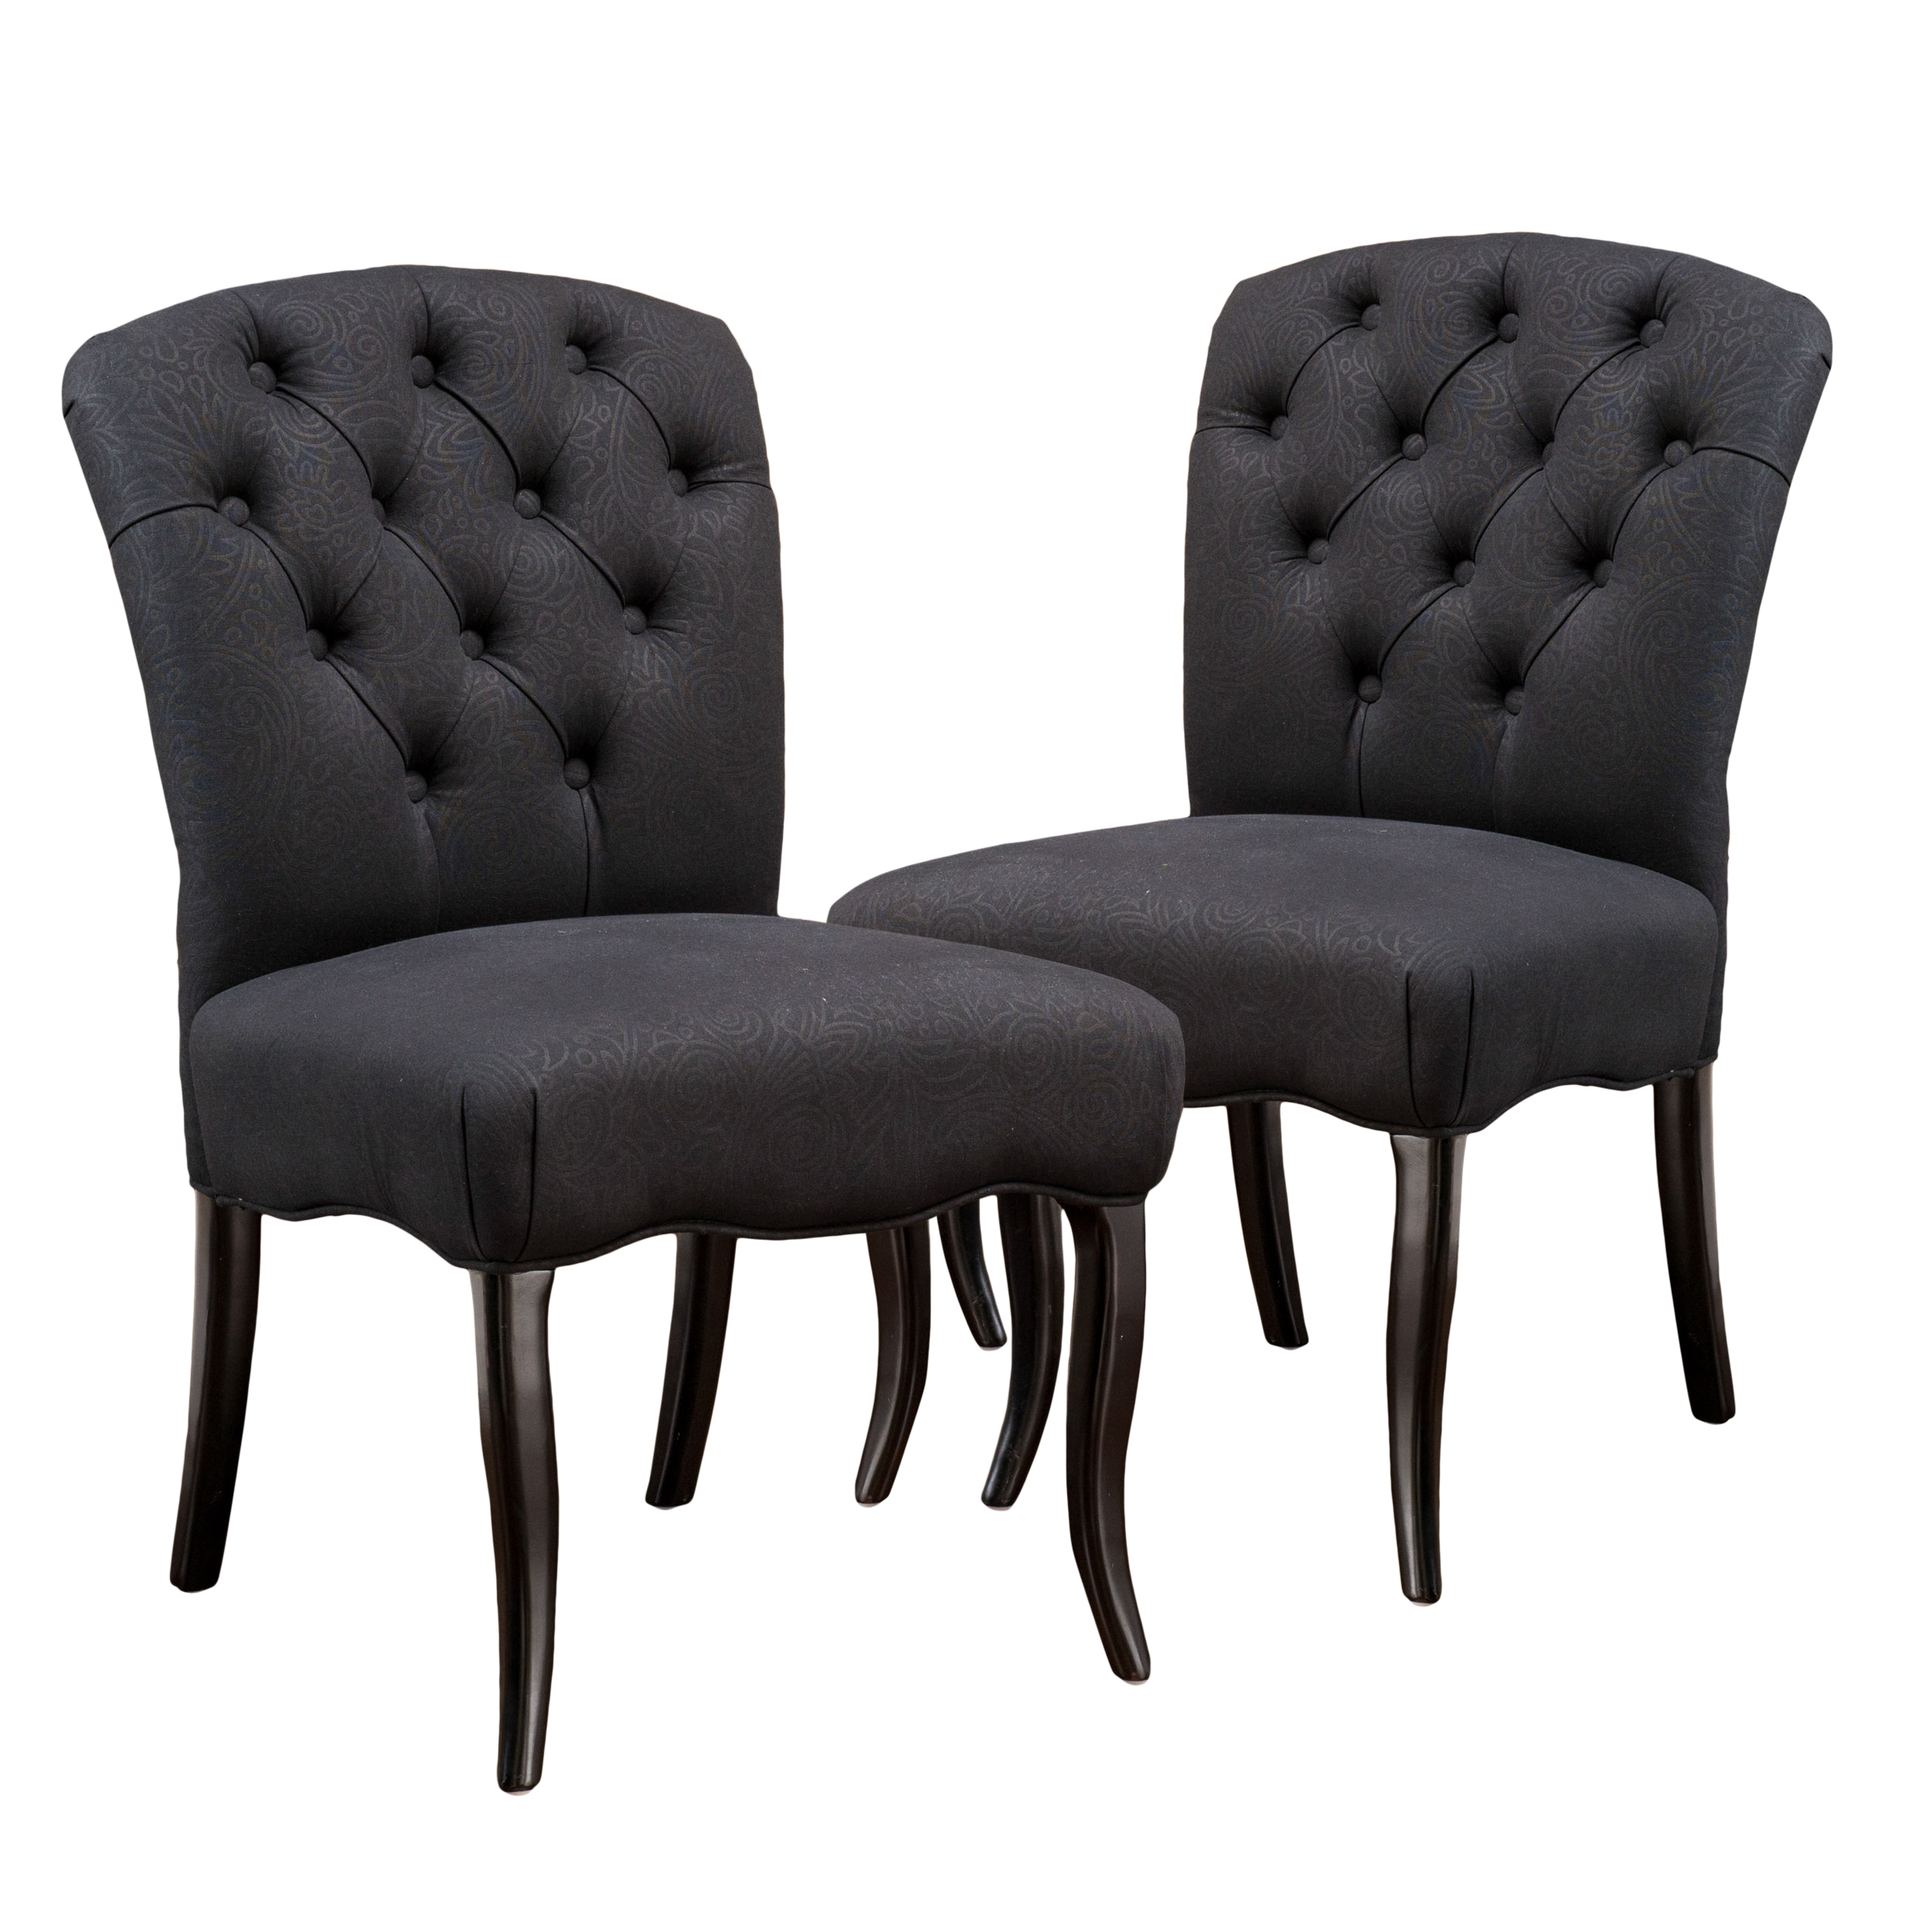 mckenzie black scroll fabric dining chairs (set of 2) AFGOKKB